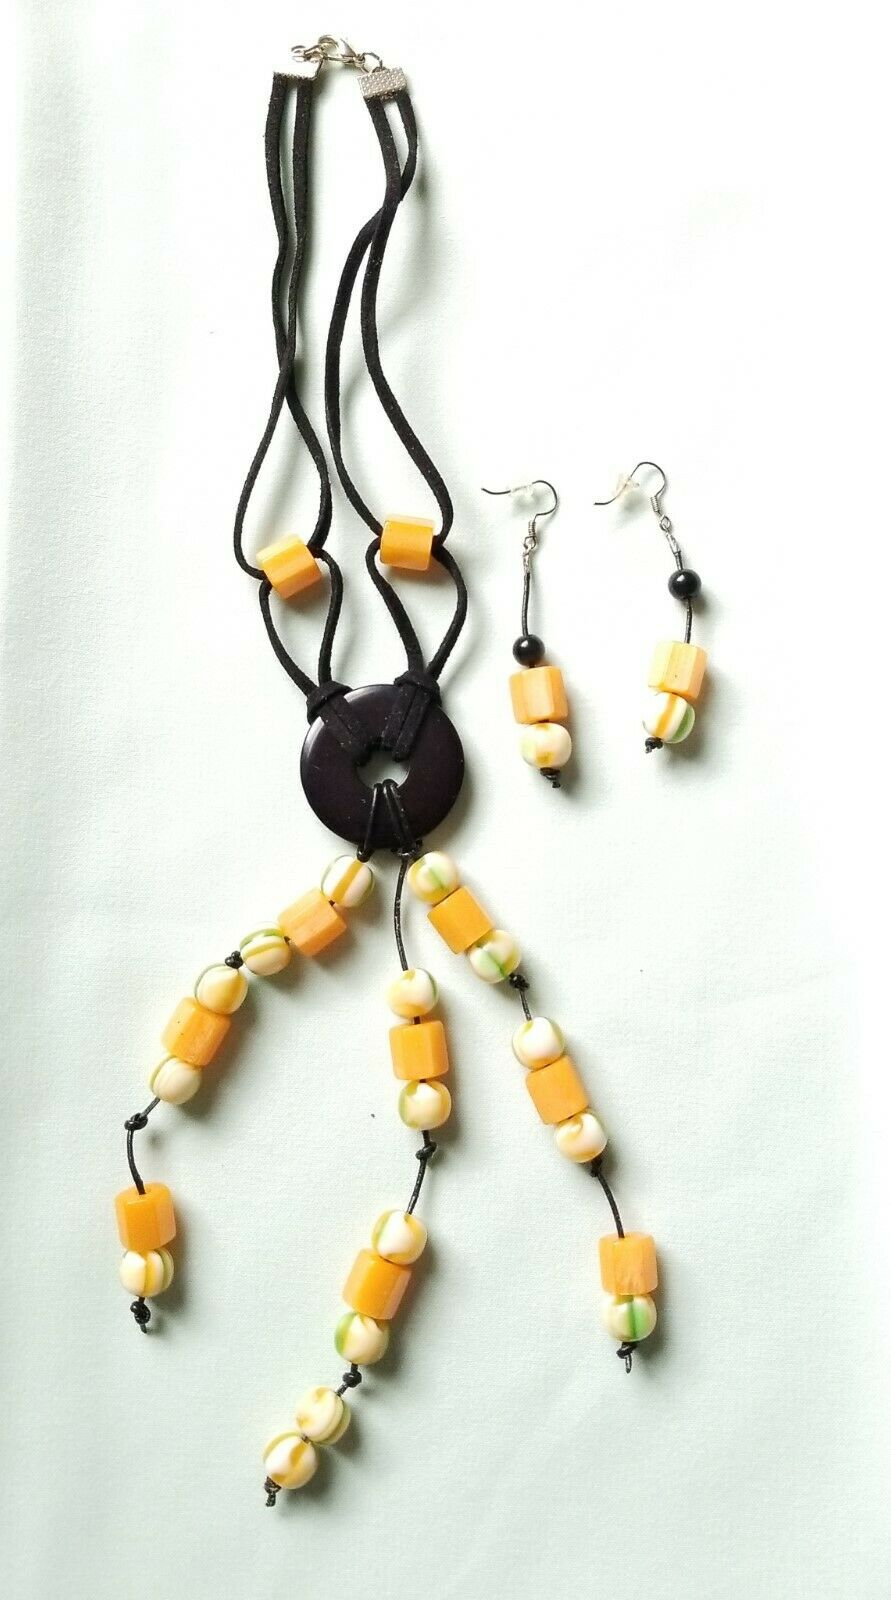 Handcrafted necklace and earrings, proper packed in a jewelry gift box.